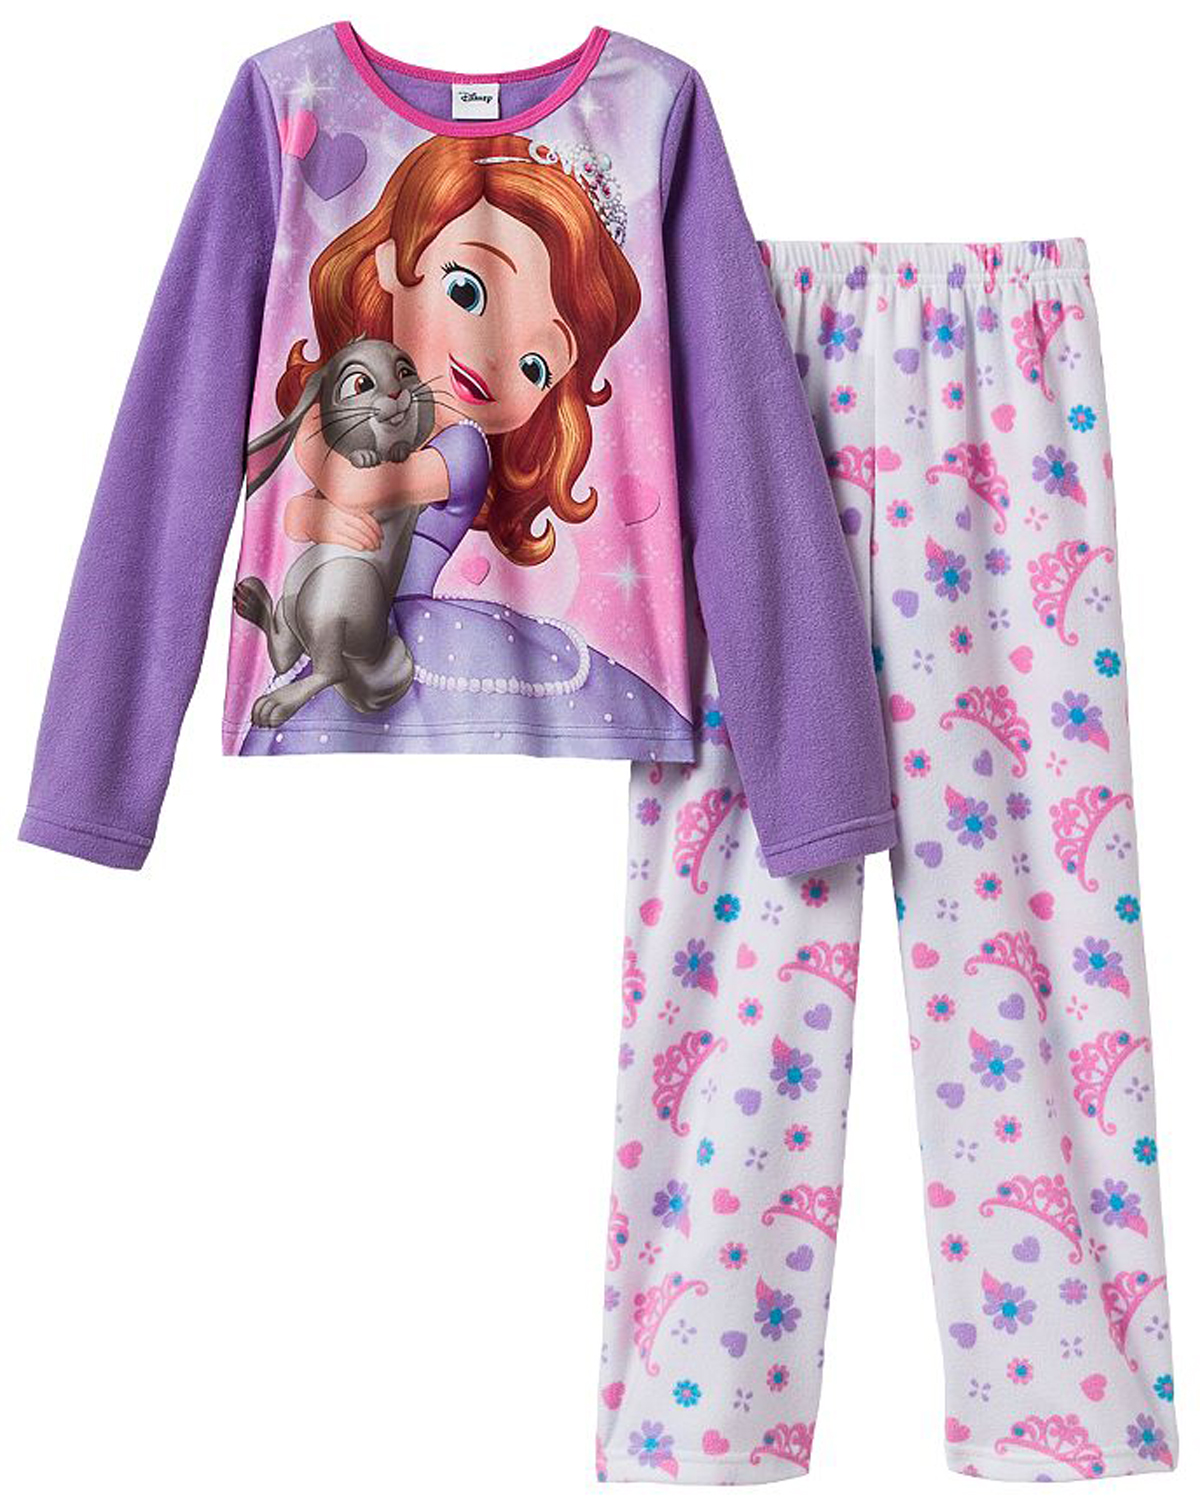 Disney Little Girls' 2 Piece Sofia the First Princess Polar Fleece Pajama Set at Sears.com